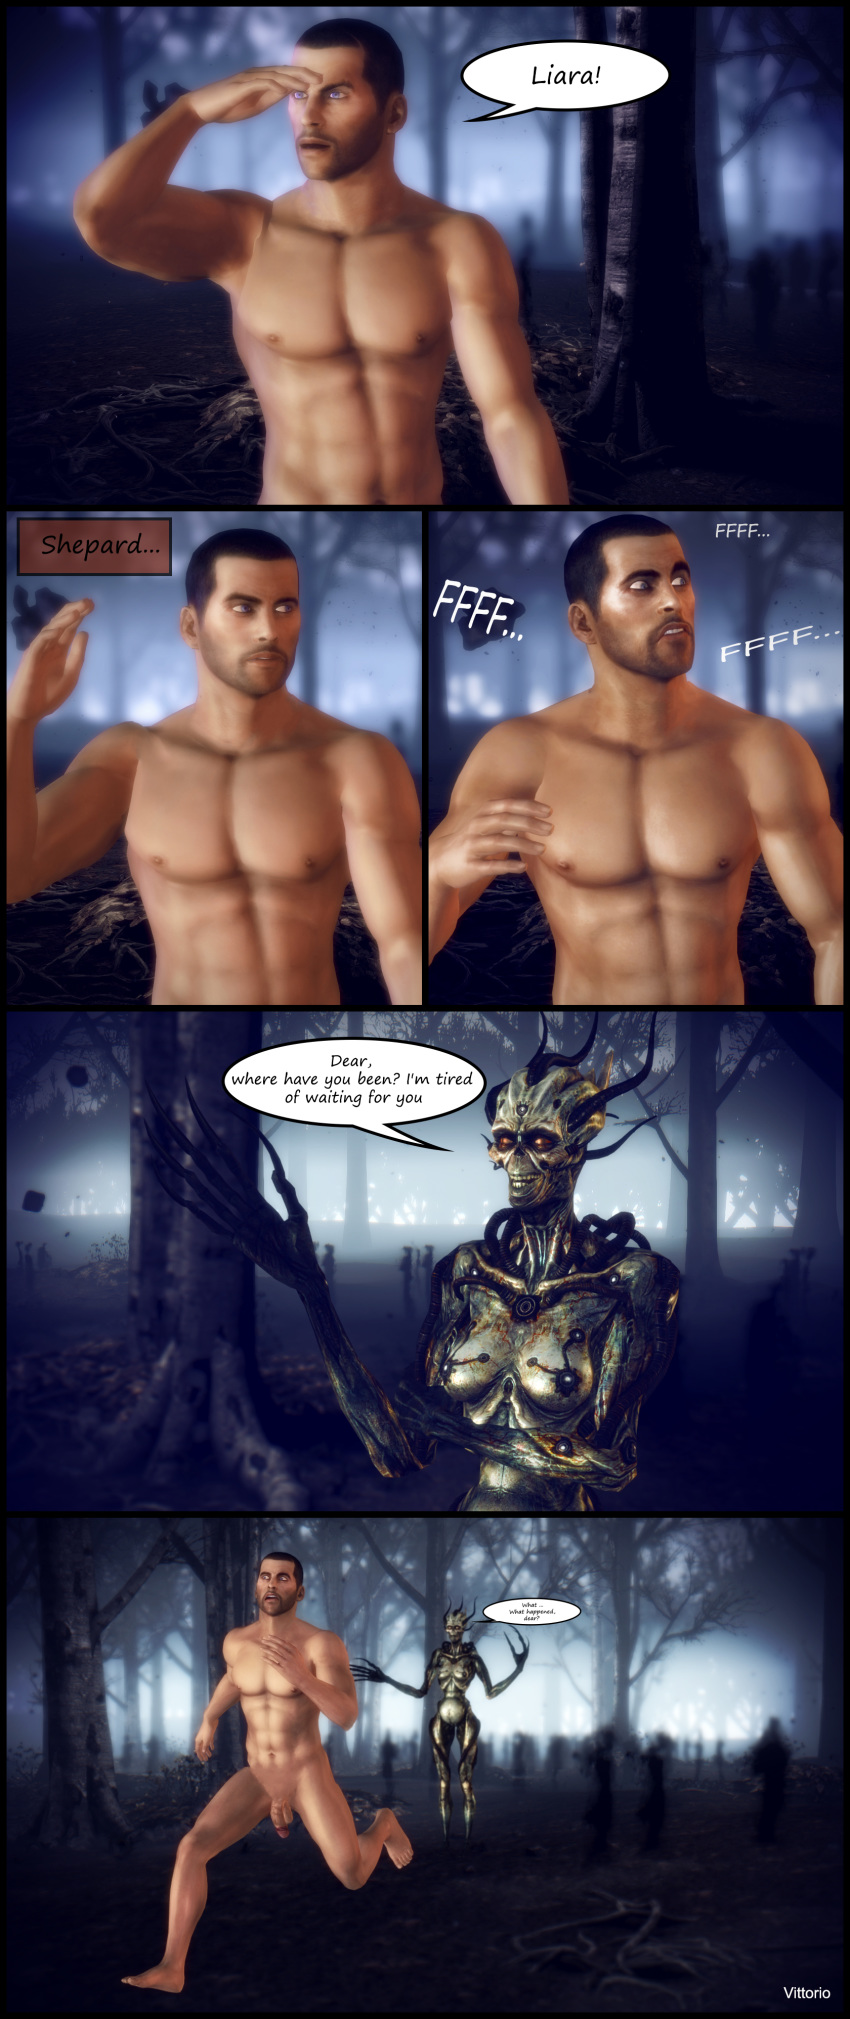 jack mass effect Eat shit asshole fall off your horse